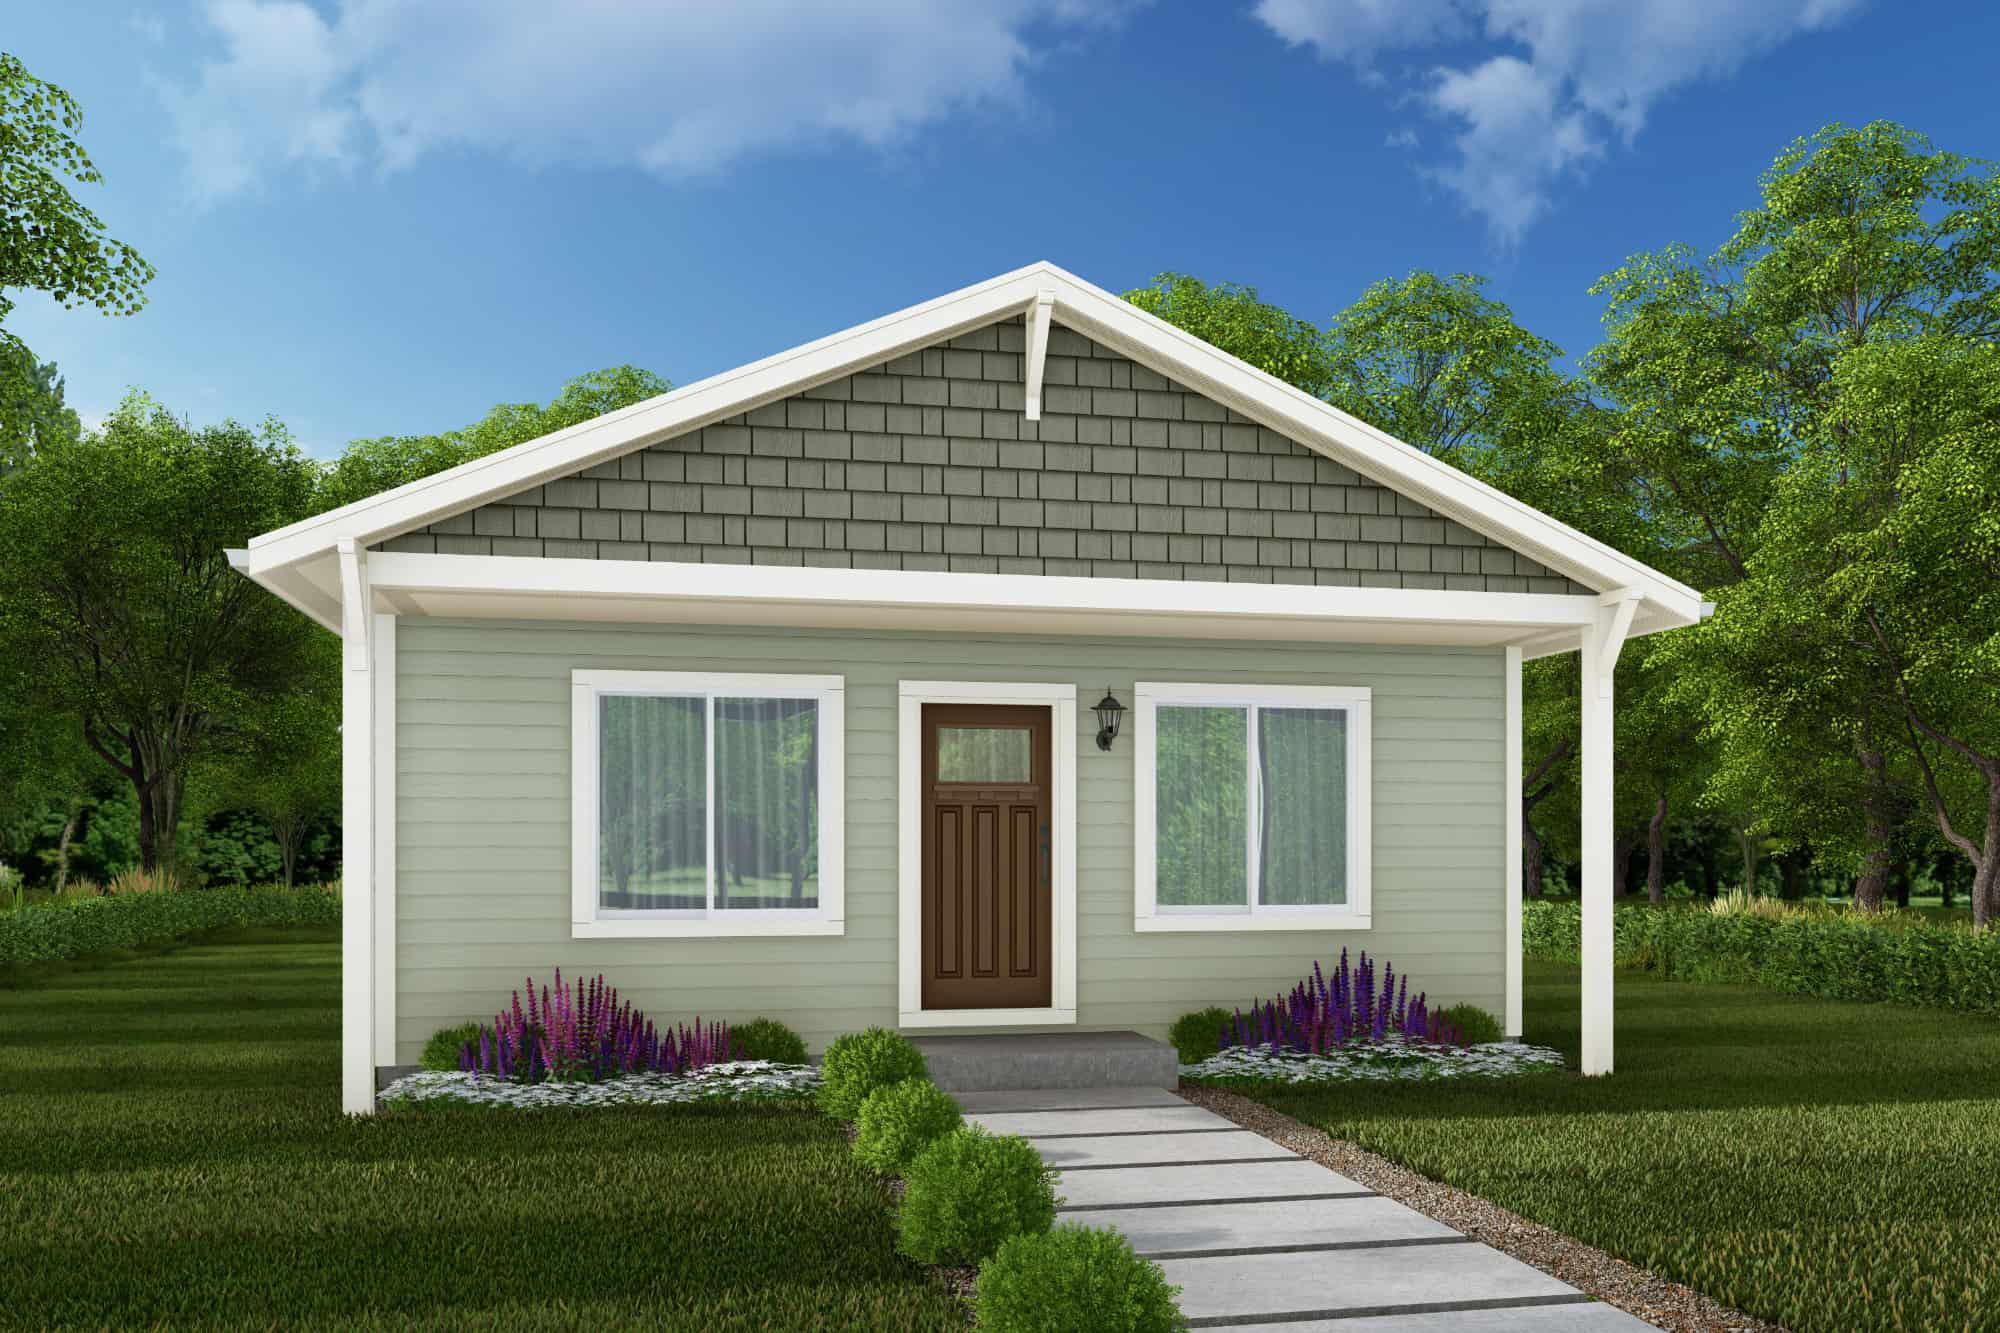 Chehalis Home Plan - ADU 500